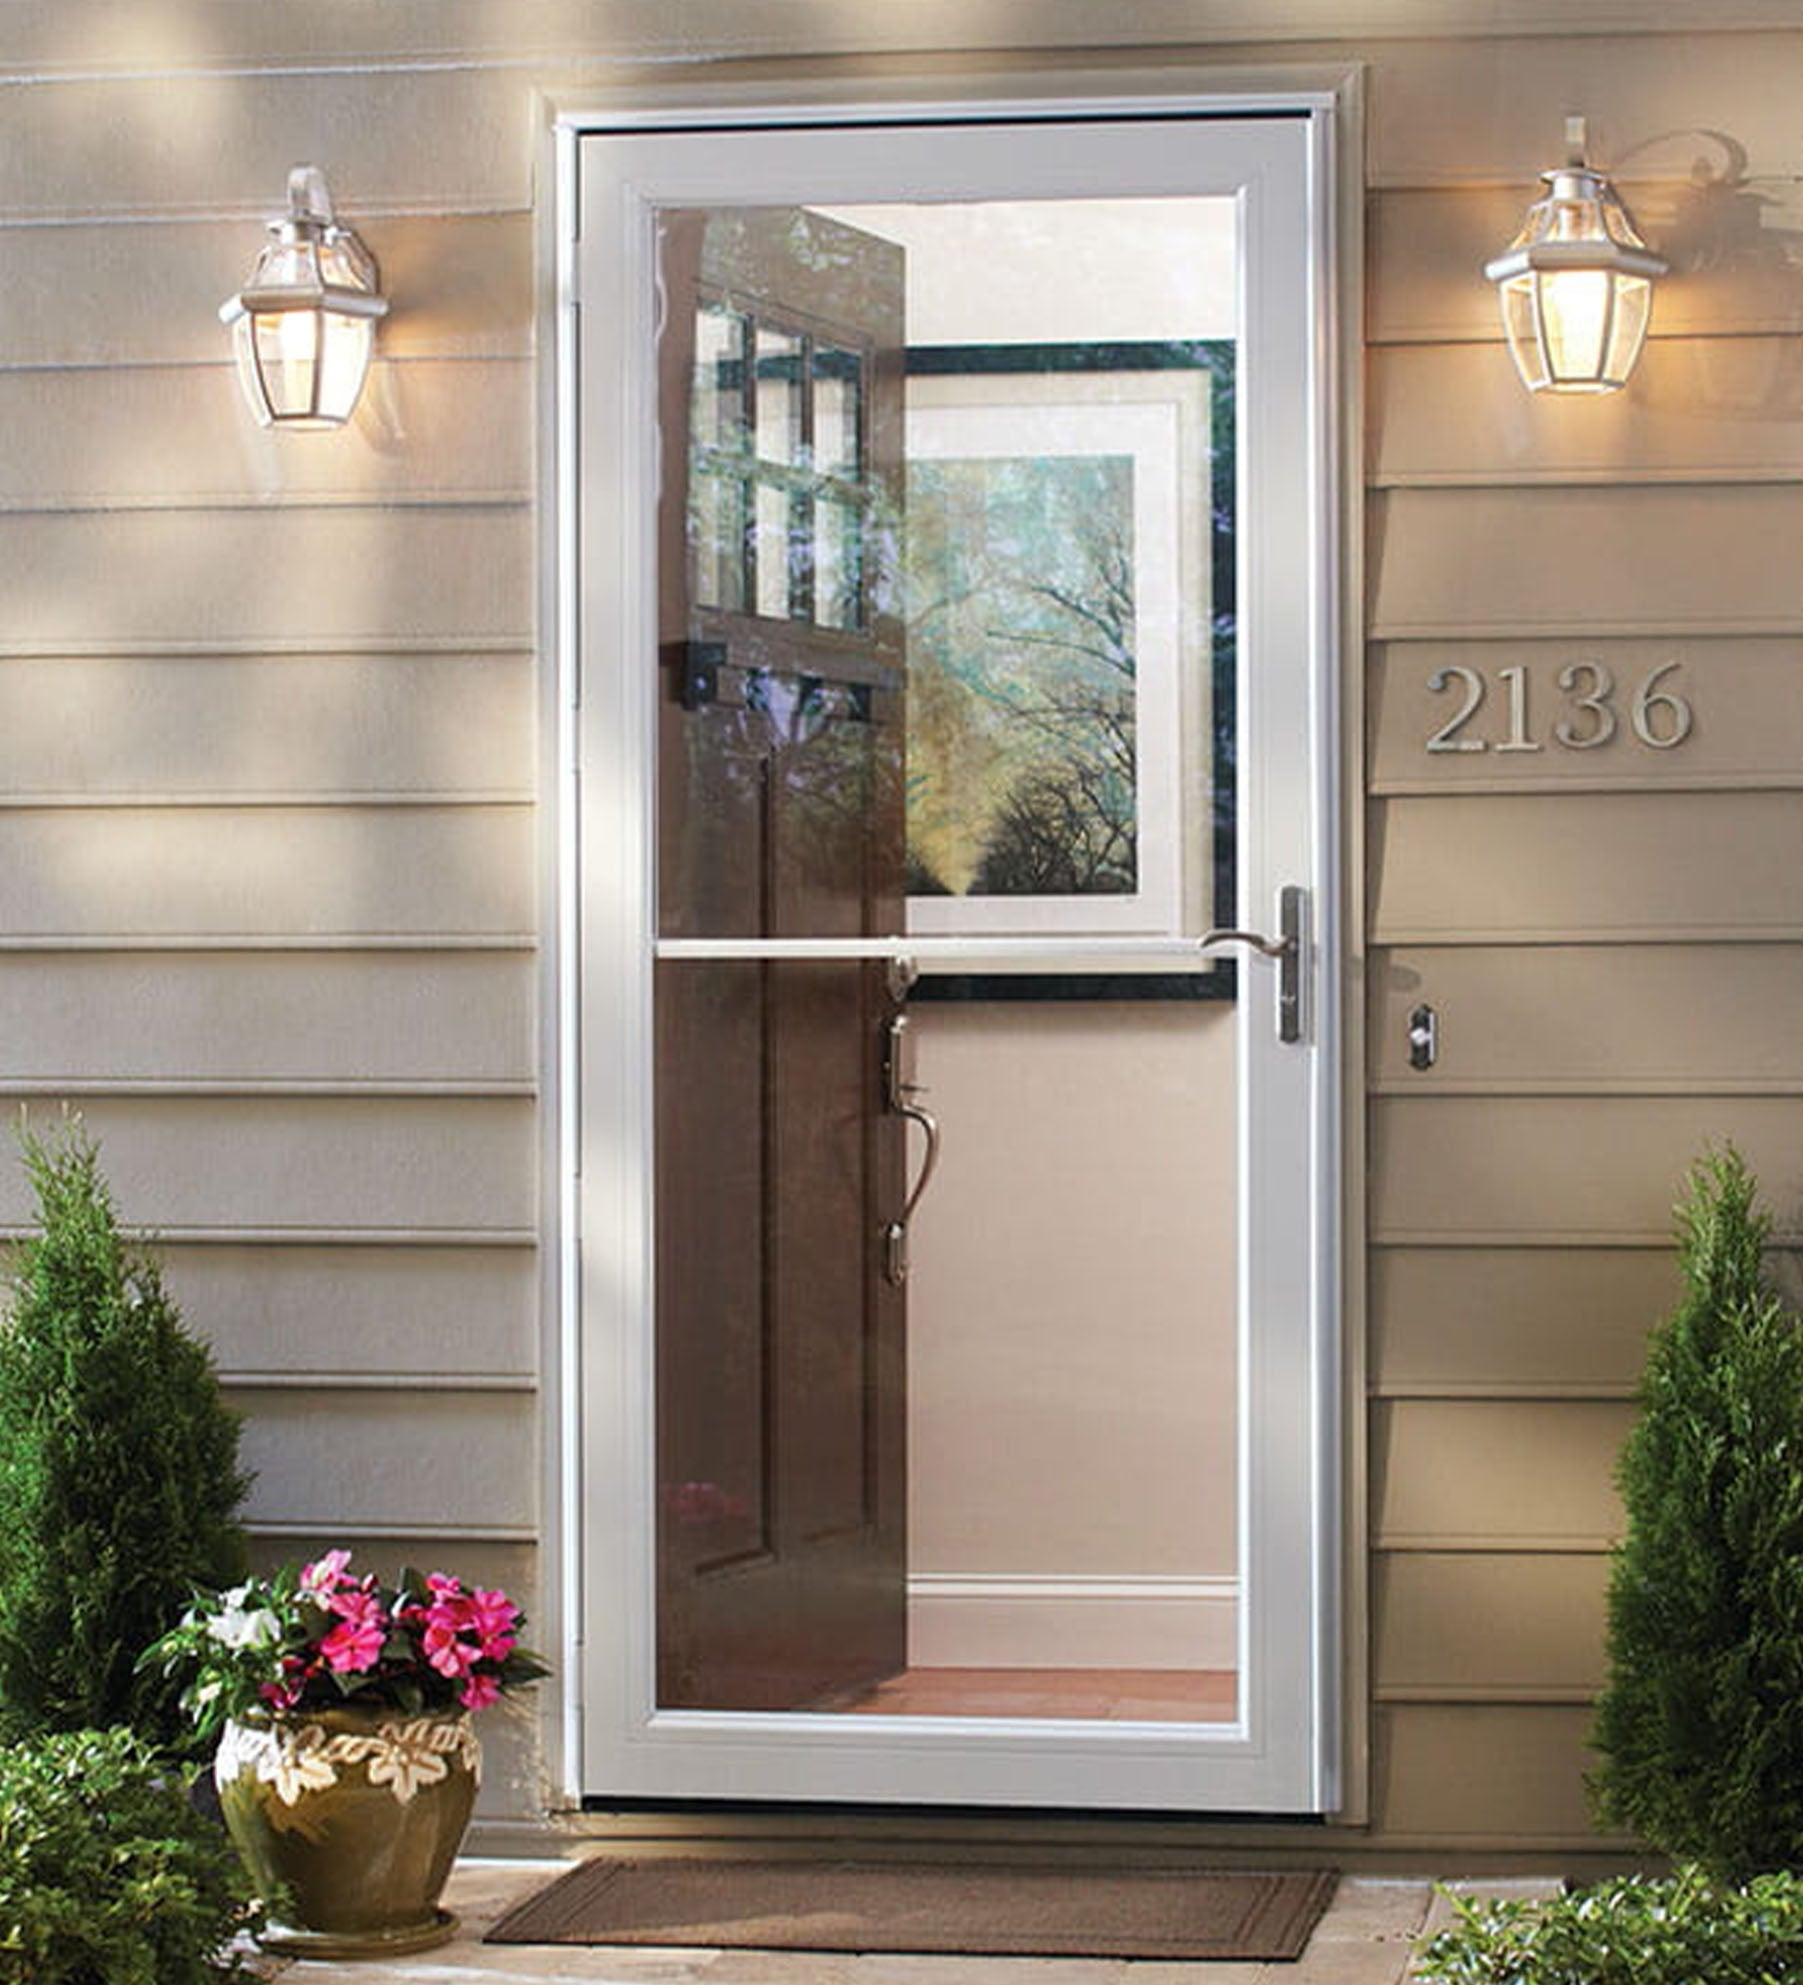 INSTALLED Larson Easy Vent Full View Storm Door w/ Hardware        STARTING 700.99